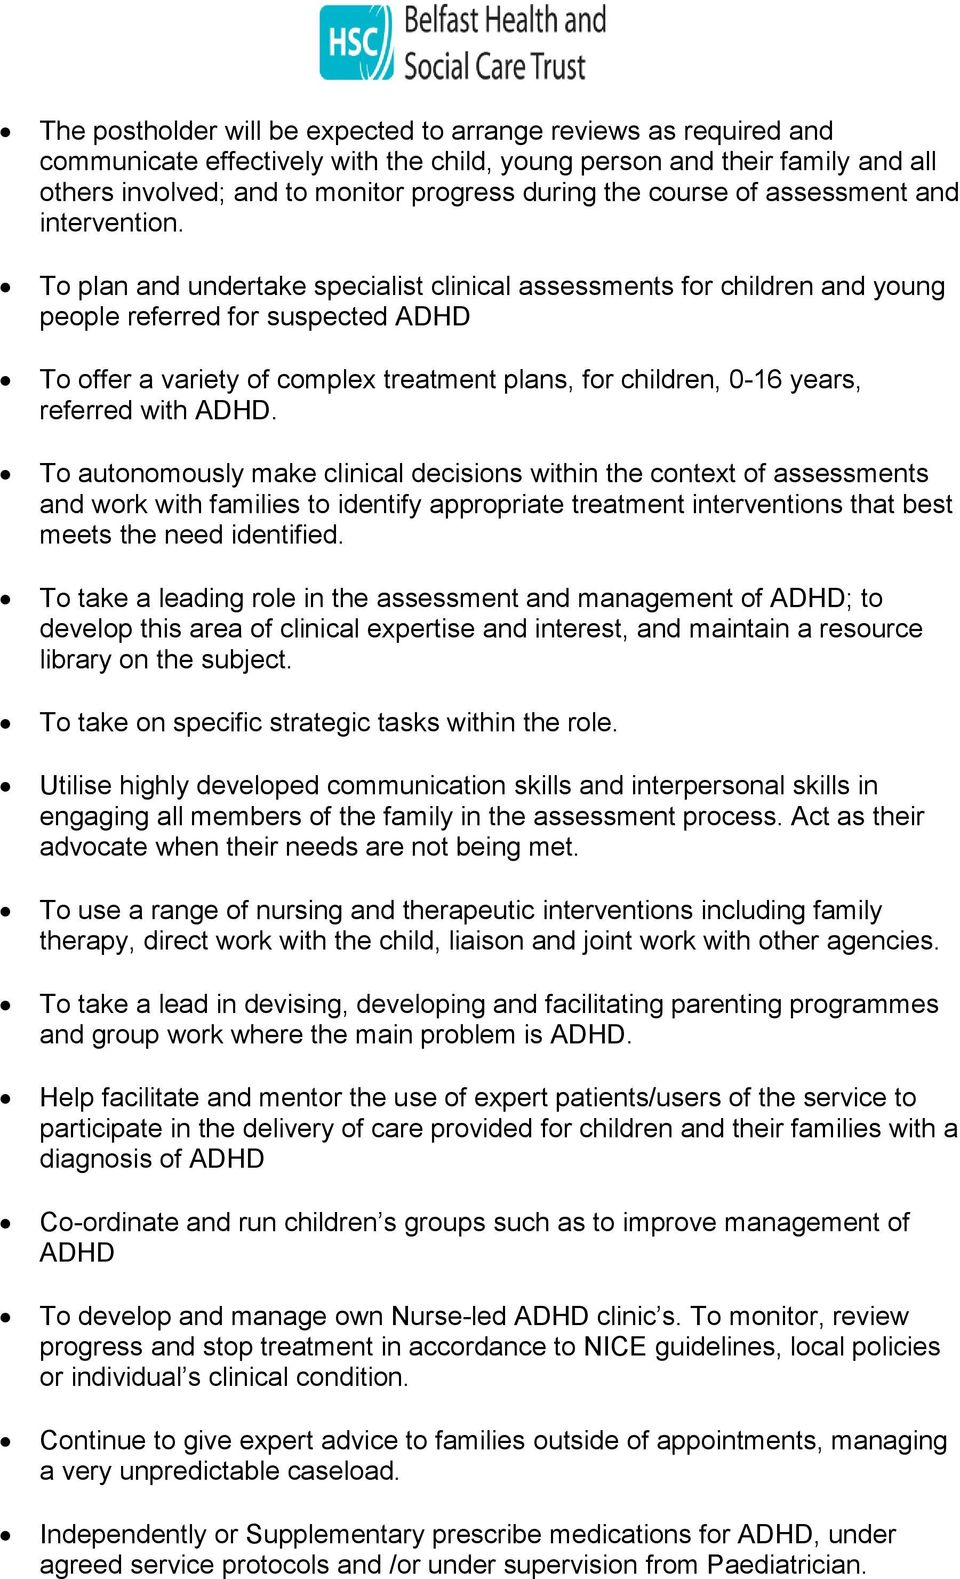 intervention for adhd